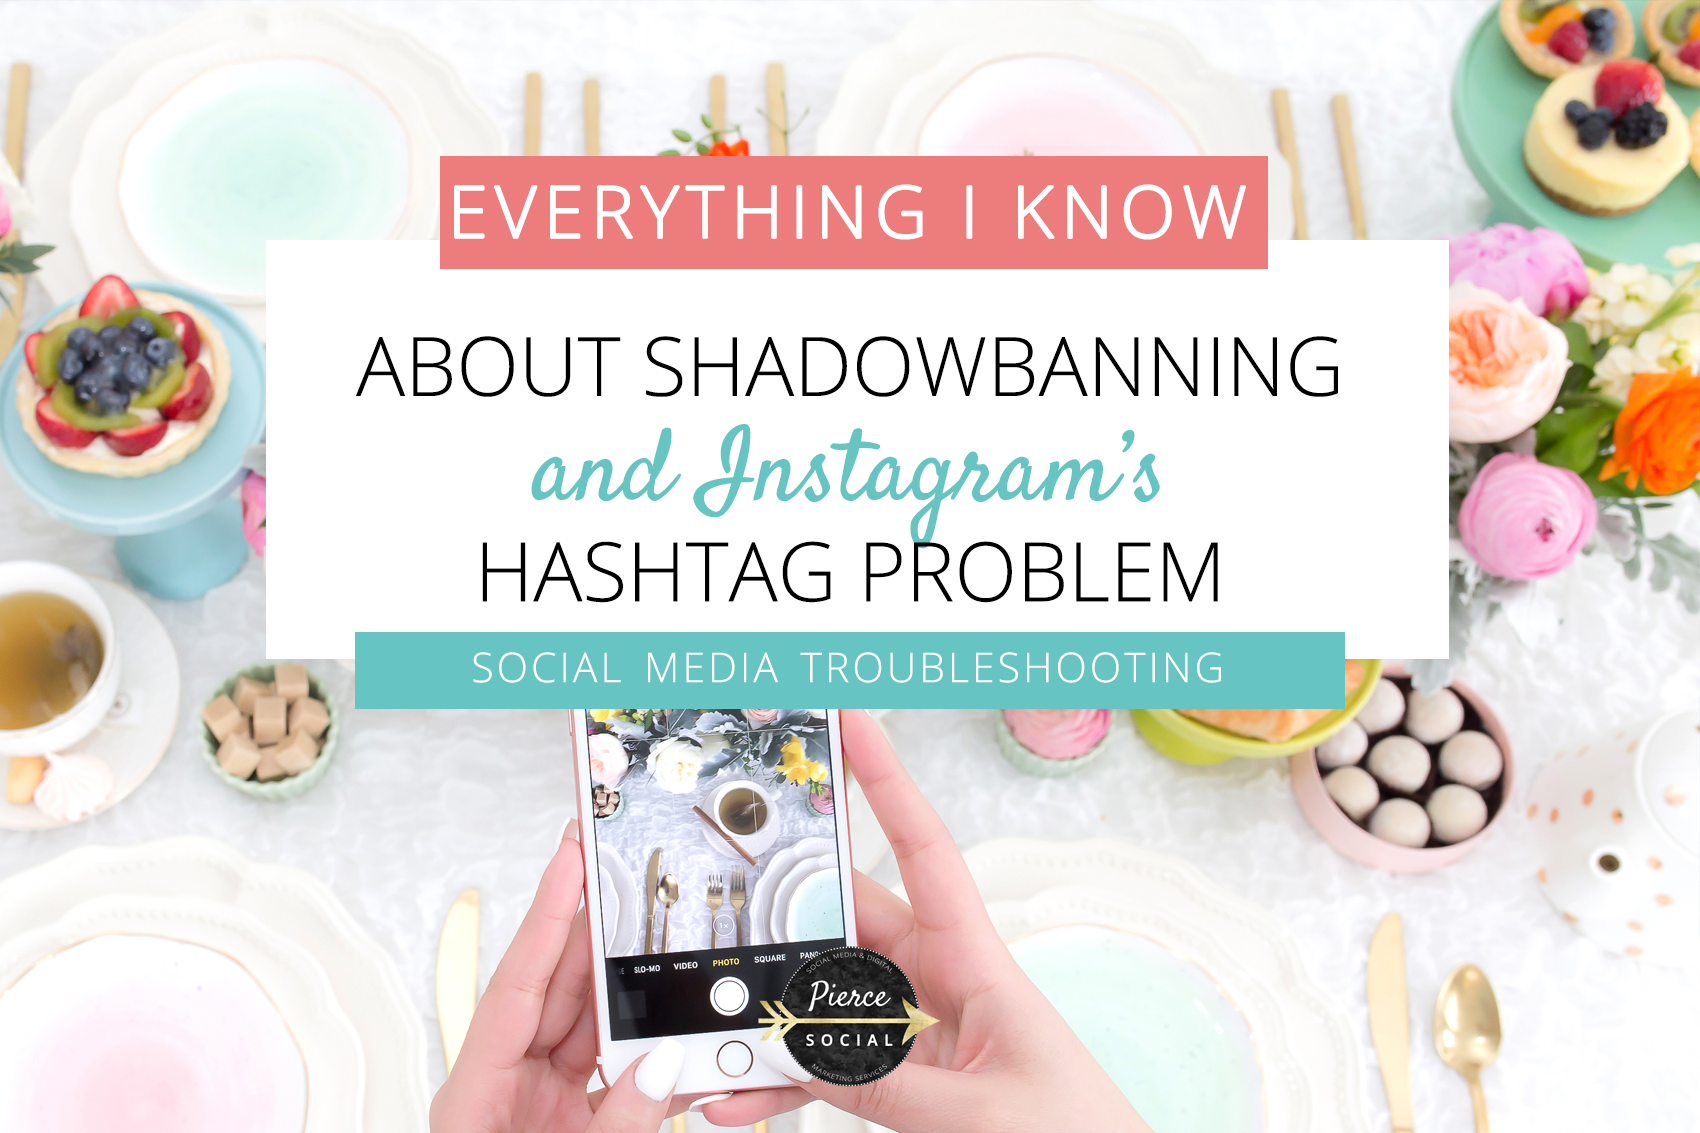 Everything I Know About Instagram's Hashtag Problem and Shadowbanning - Pierce Social